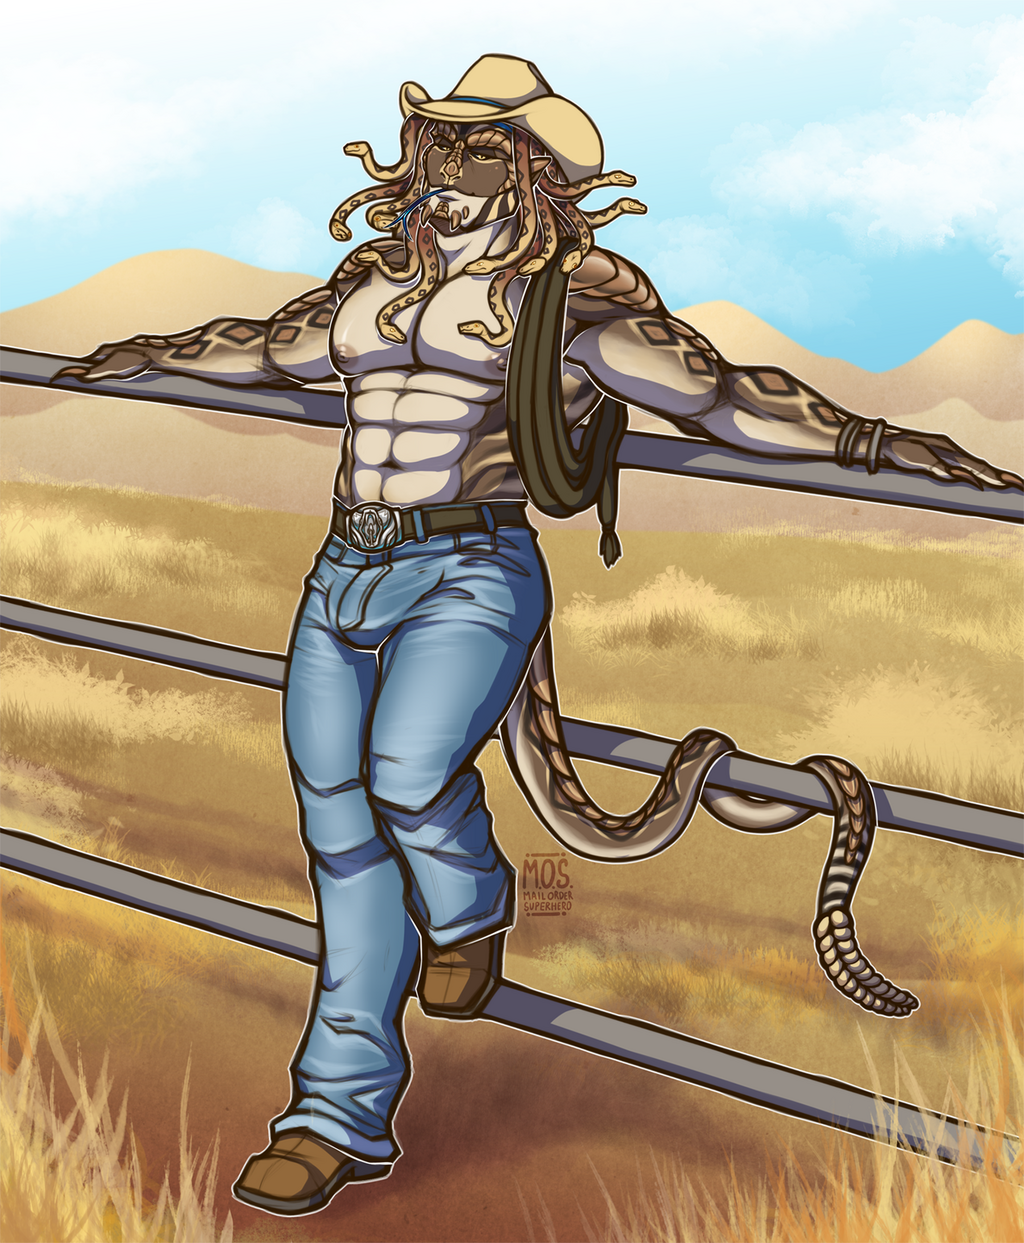 Most recent image: He didn't choose the cowboy life it chose him.